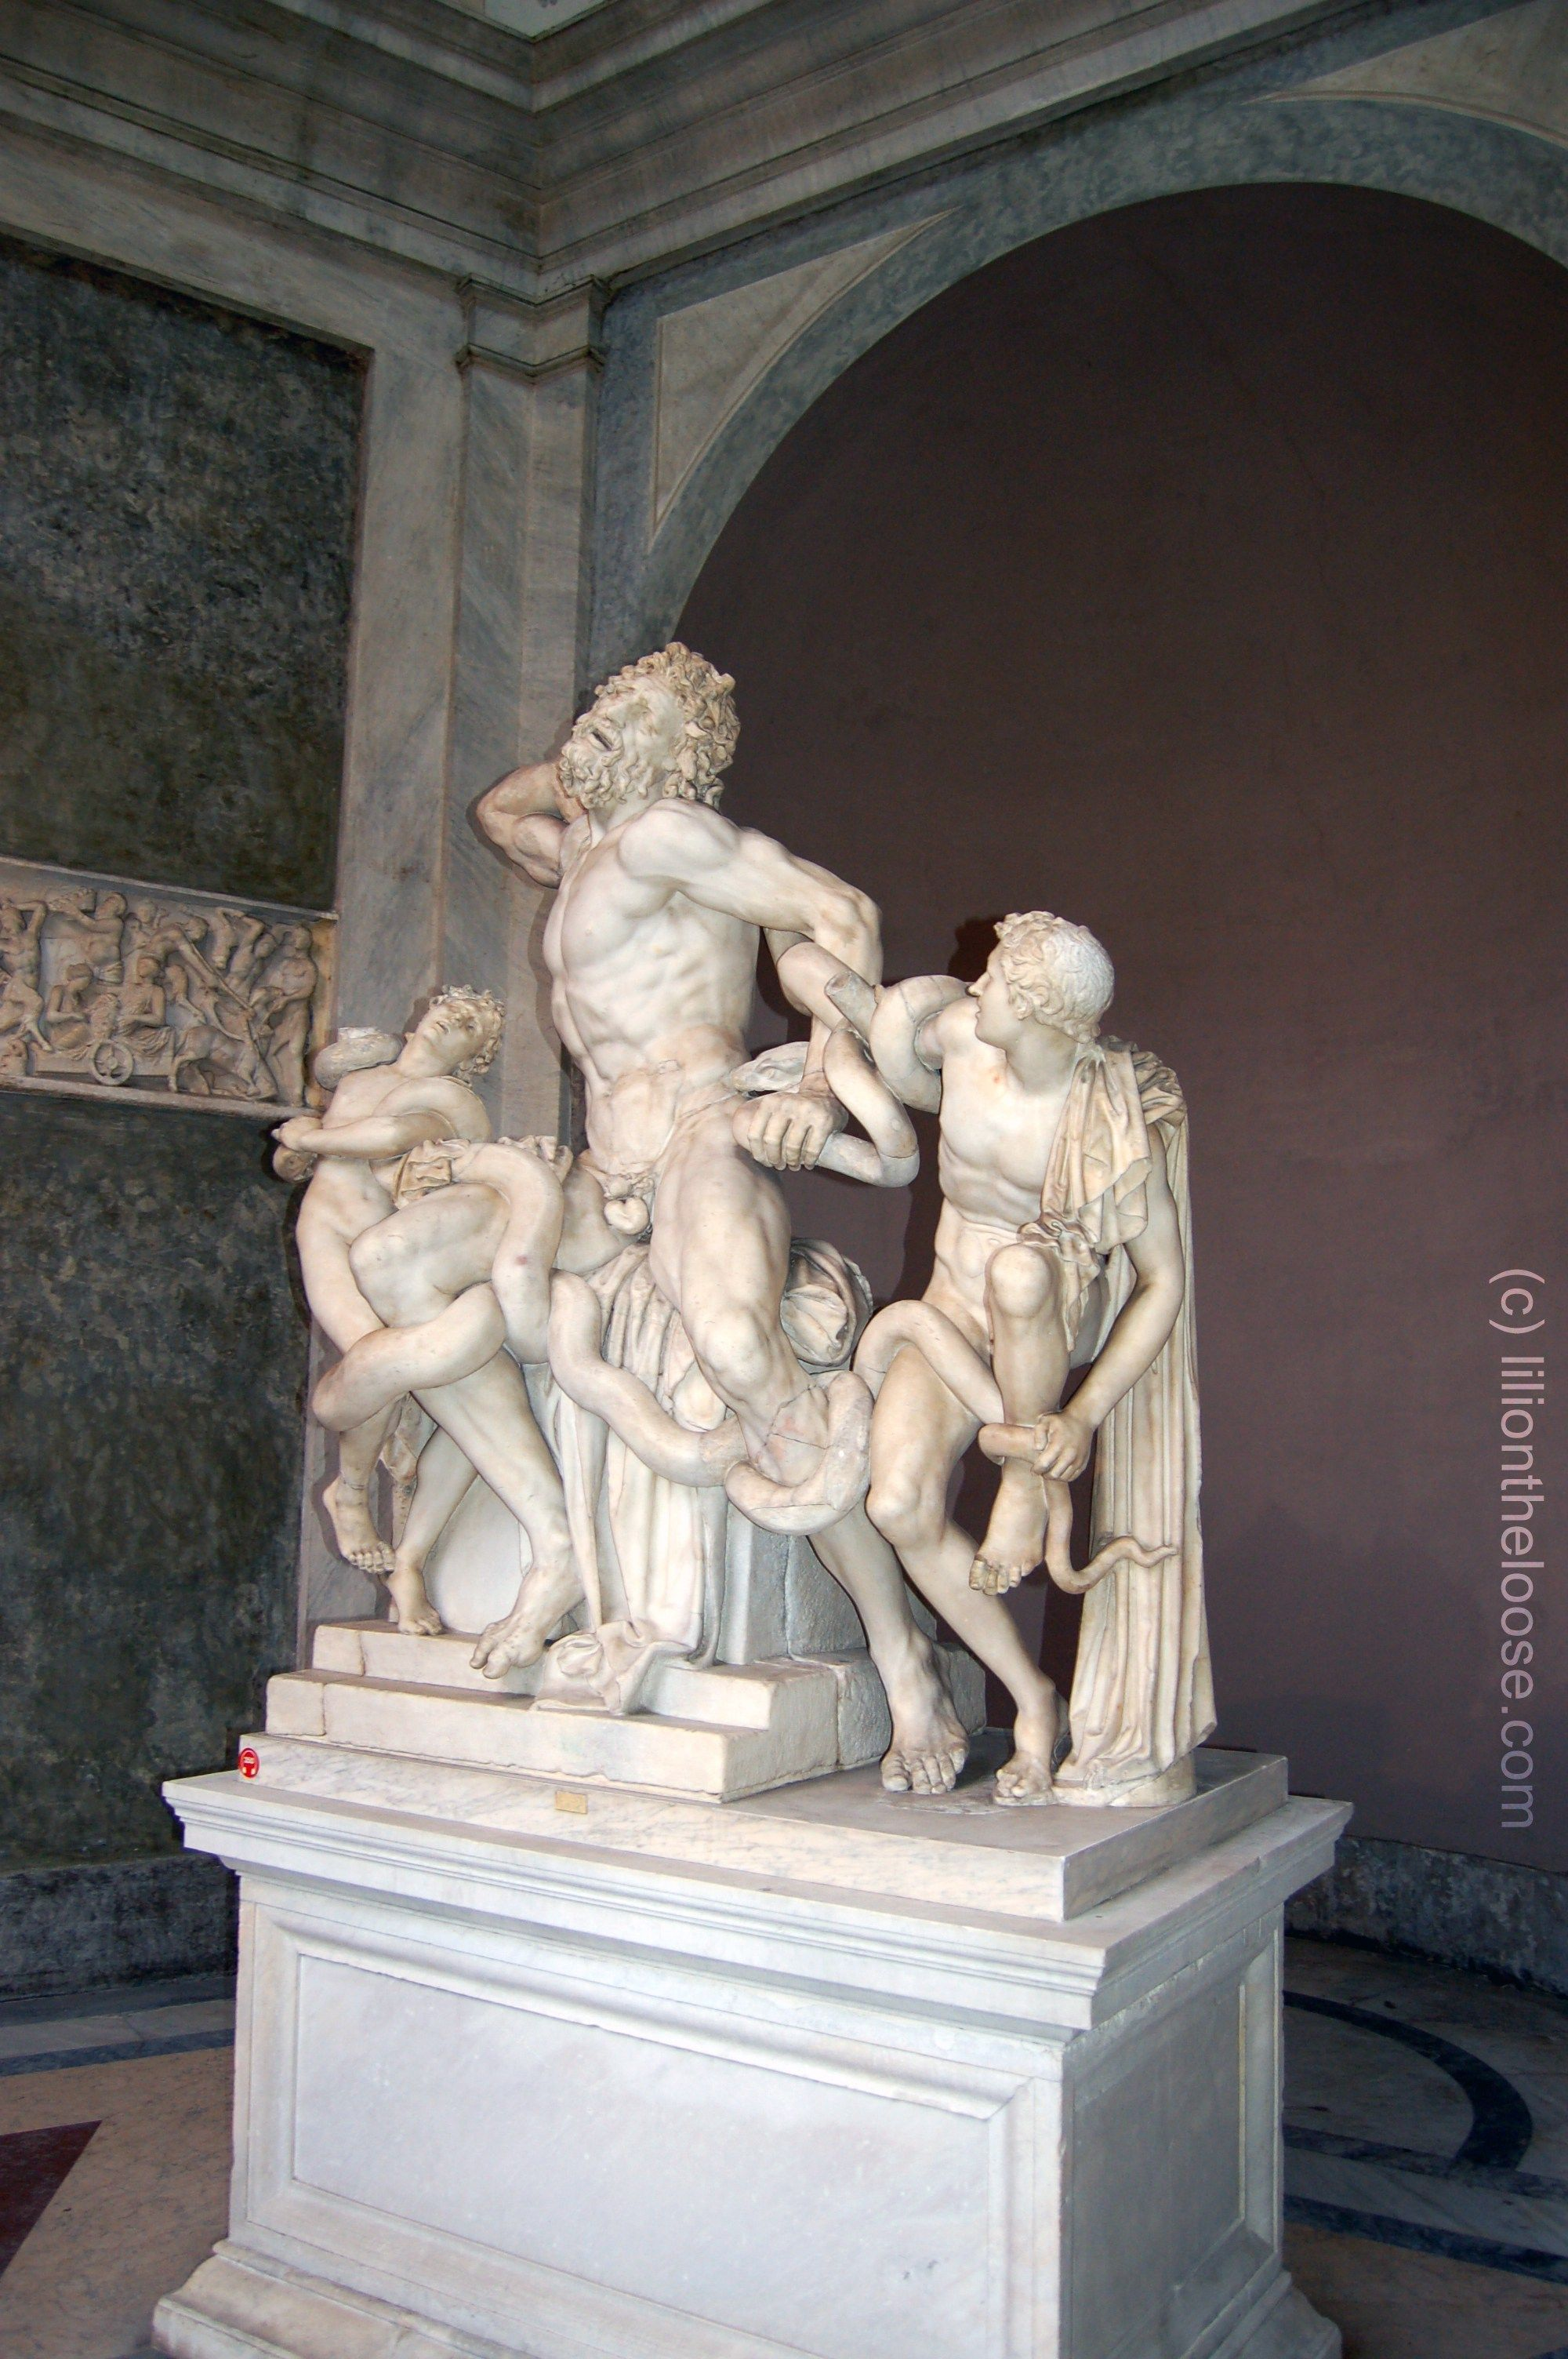 Laocoön and His Sons at the Vatican Museum in Rome, Italy